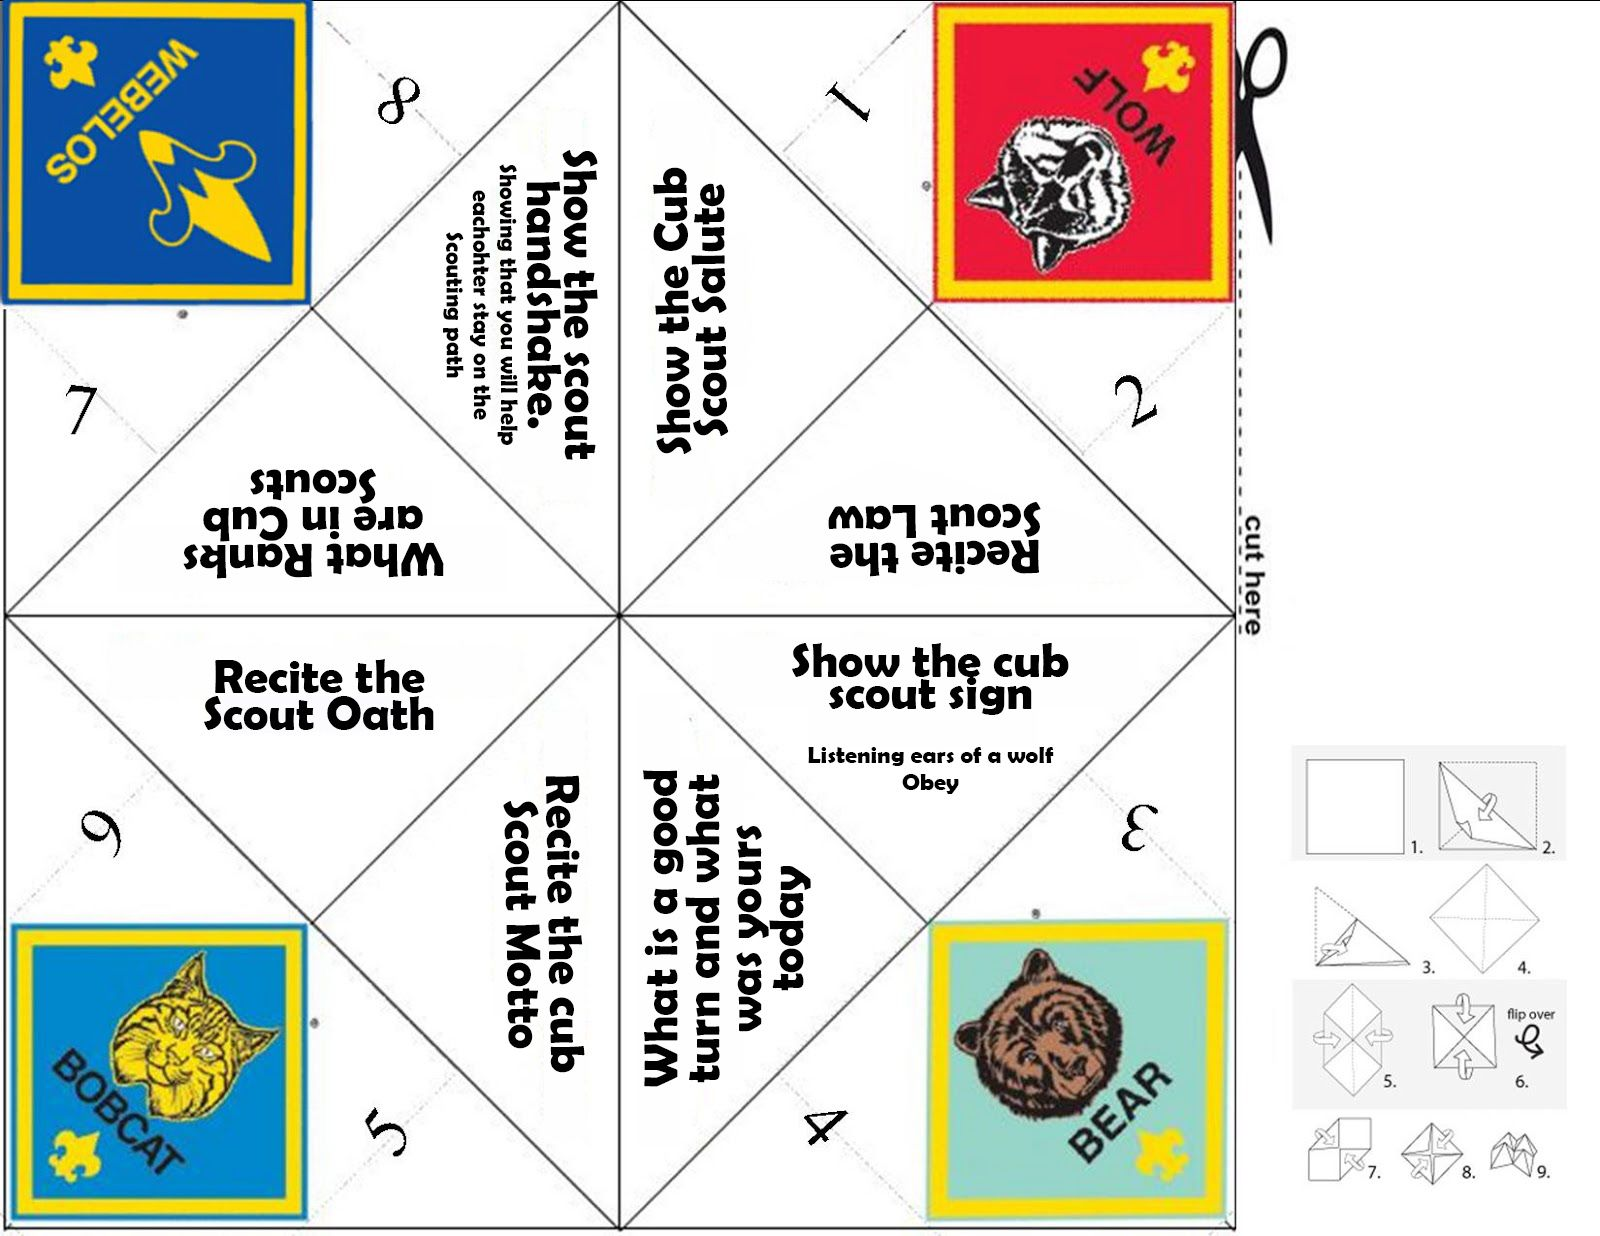 This Is A Simple Game To Help Your Cub Scouts Learn What